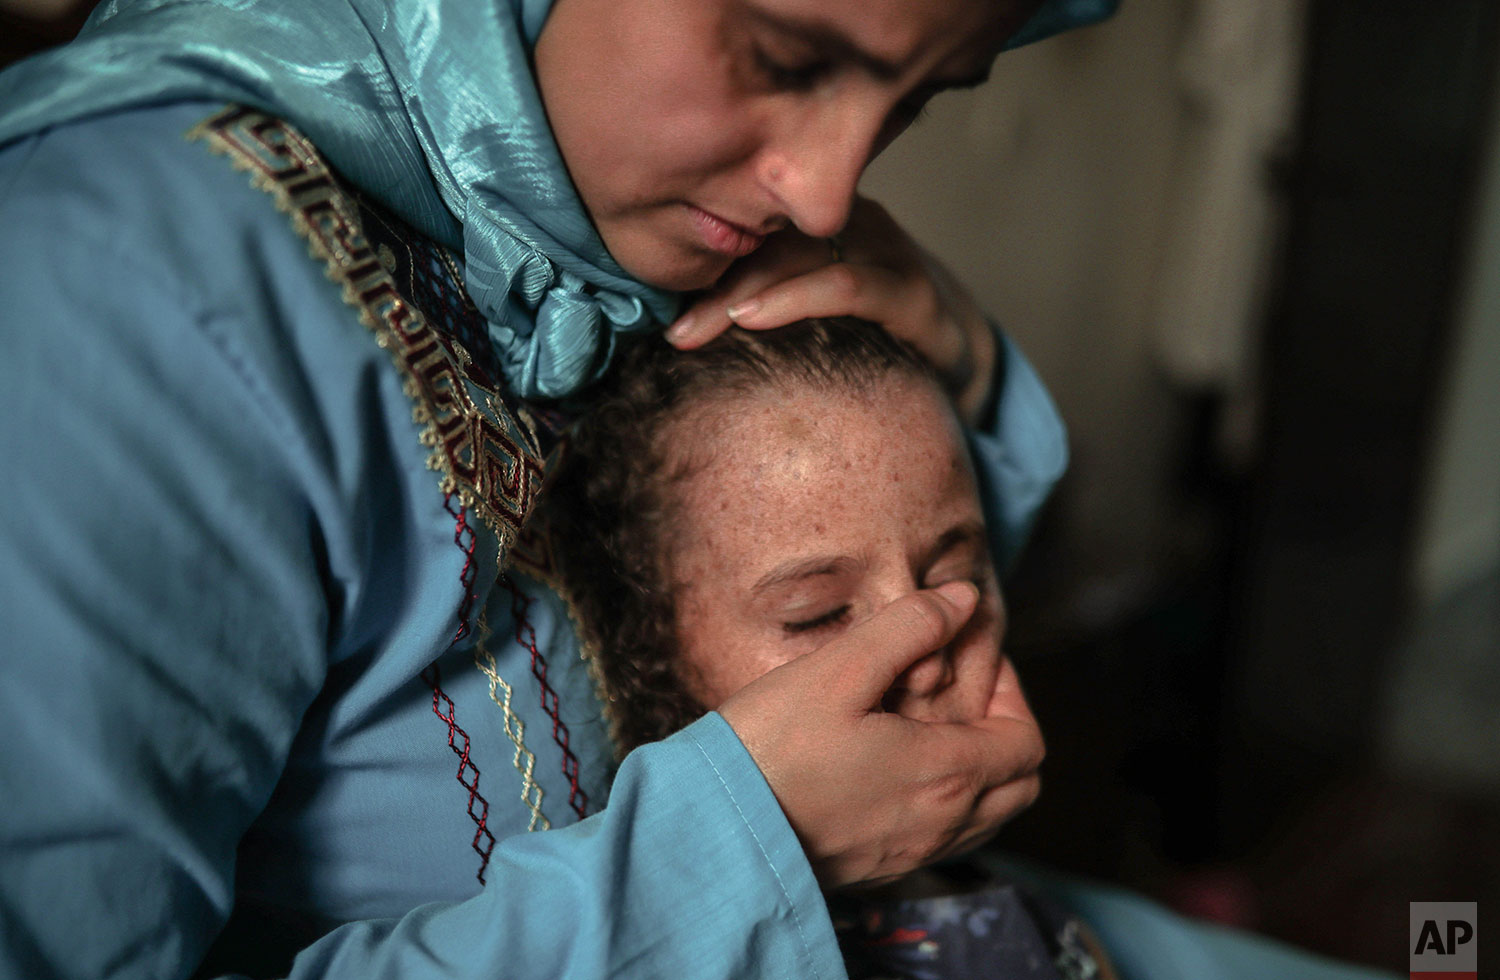 In this Tuesday, July 23, 2019 photo, Maria El Maroufi, shares a moment with her 6 year old daughter Romaisae who is affected by a rare disorder called xeroderma pigmentosum, or XP, in their home in the town of Sale, near Rabat, Morocco. (AP Photo/Mosa'ab Elshamy)